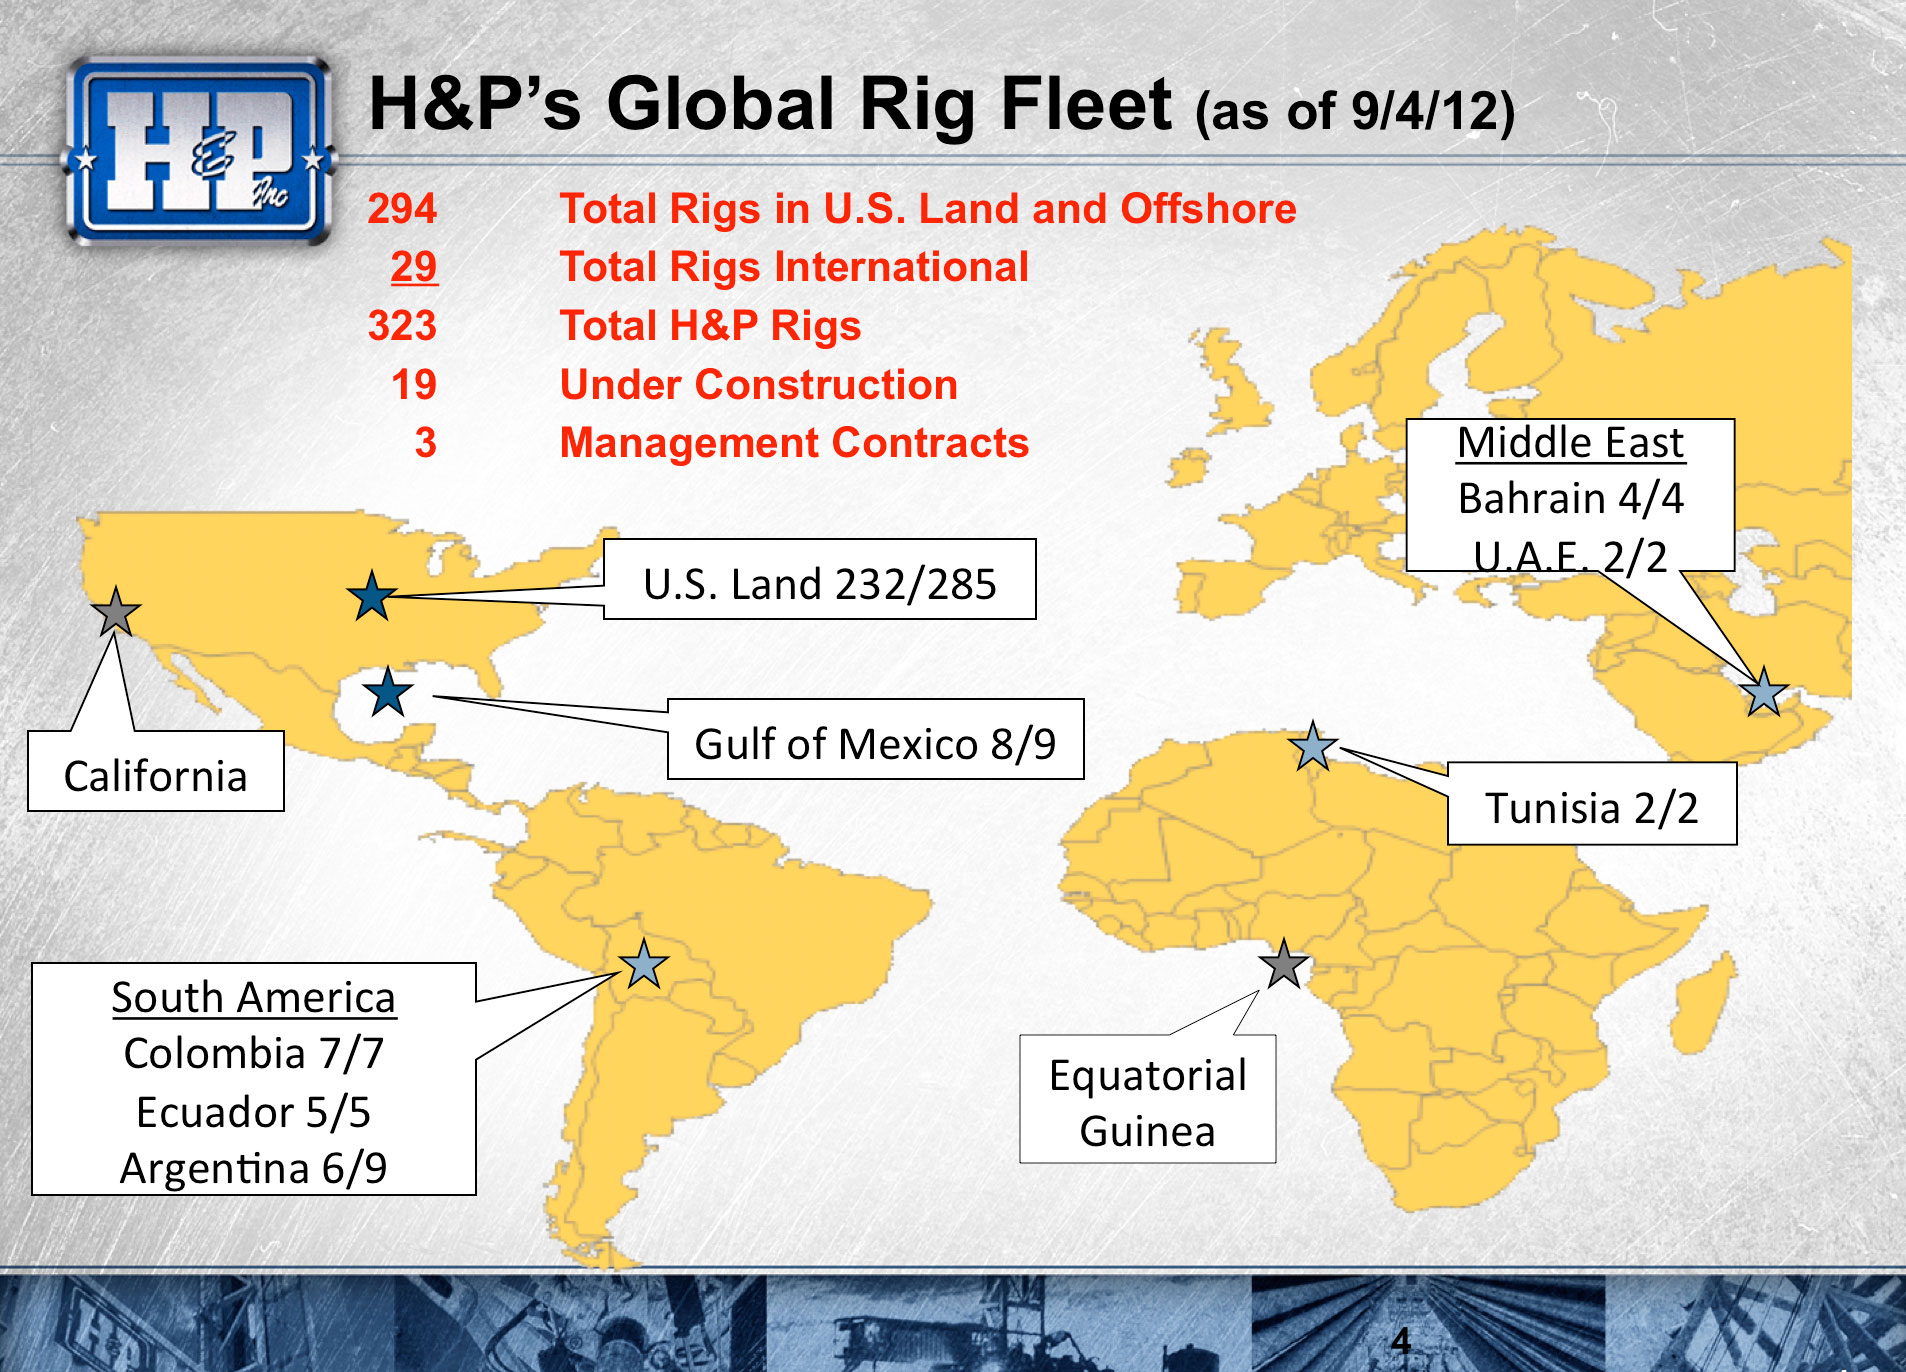 H&P delivers reliability, safety with computerized rig